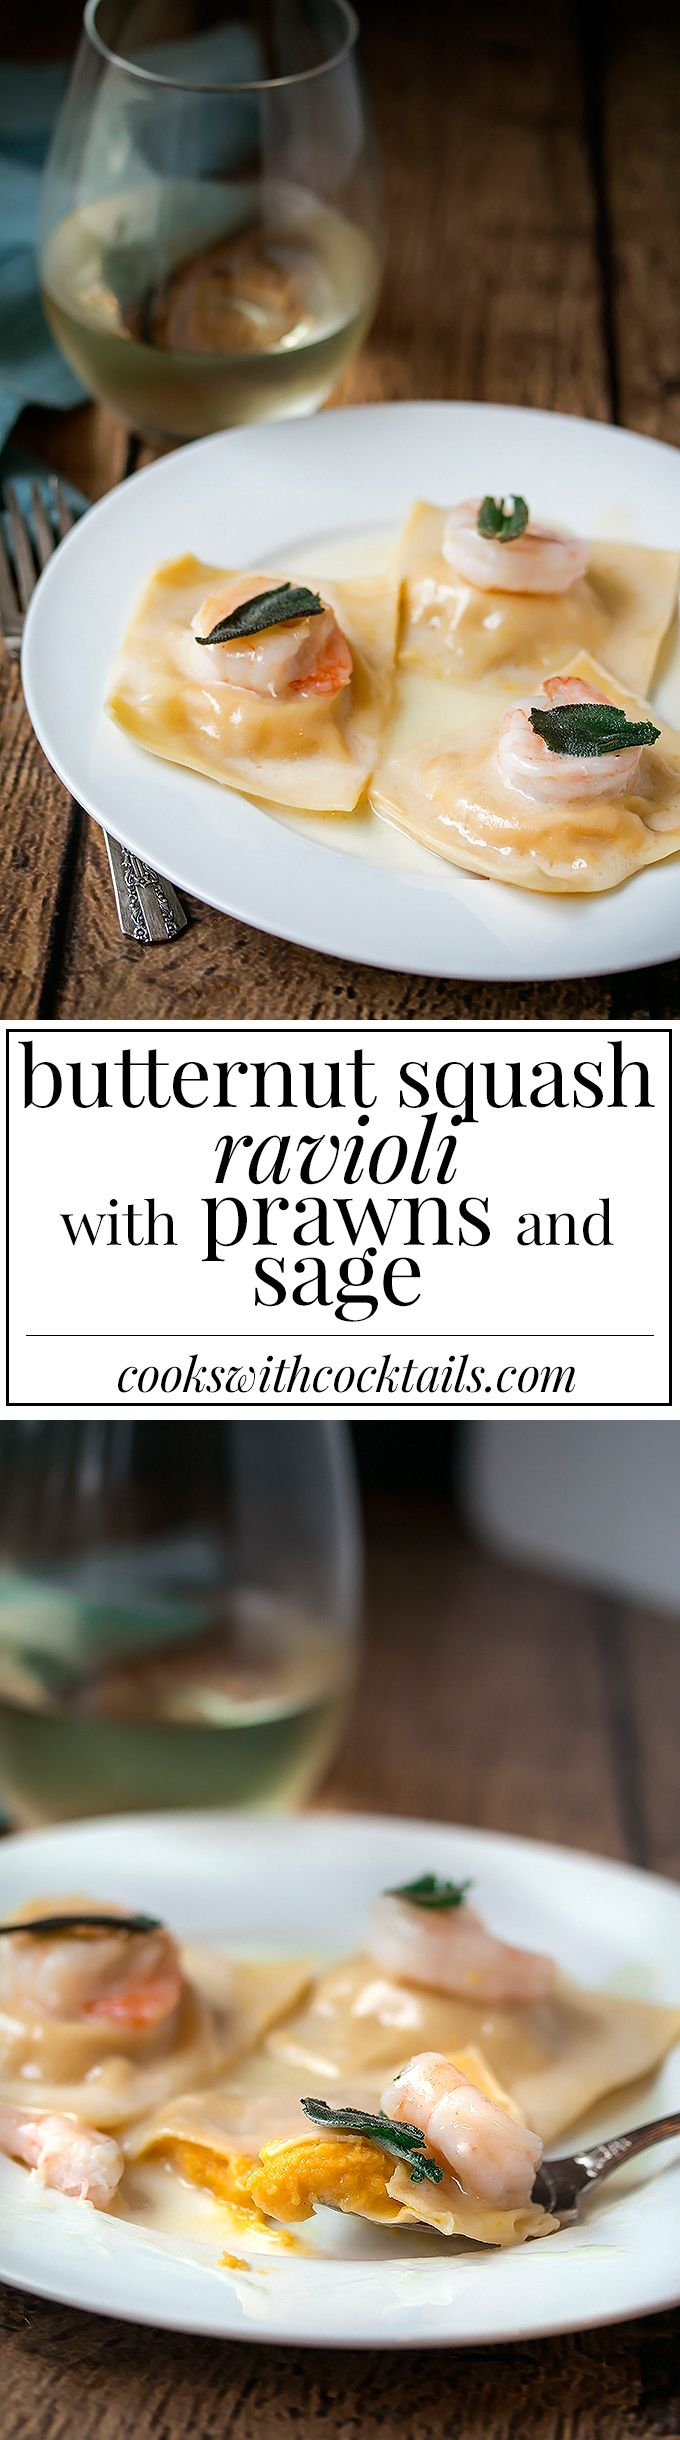 Delicious tender homemade butternut squash ravioli with a truffle oil butter sauce to die for.